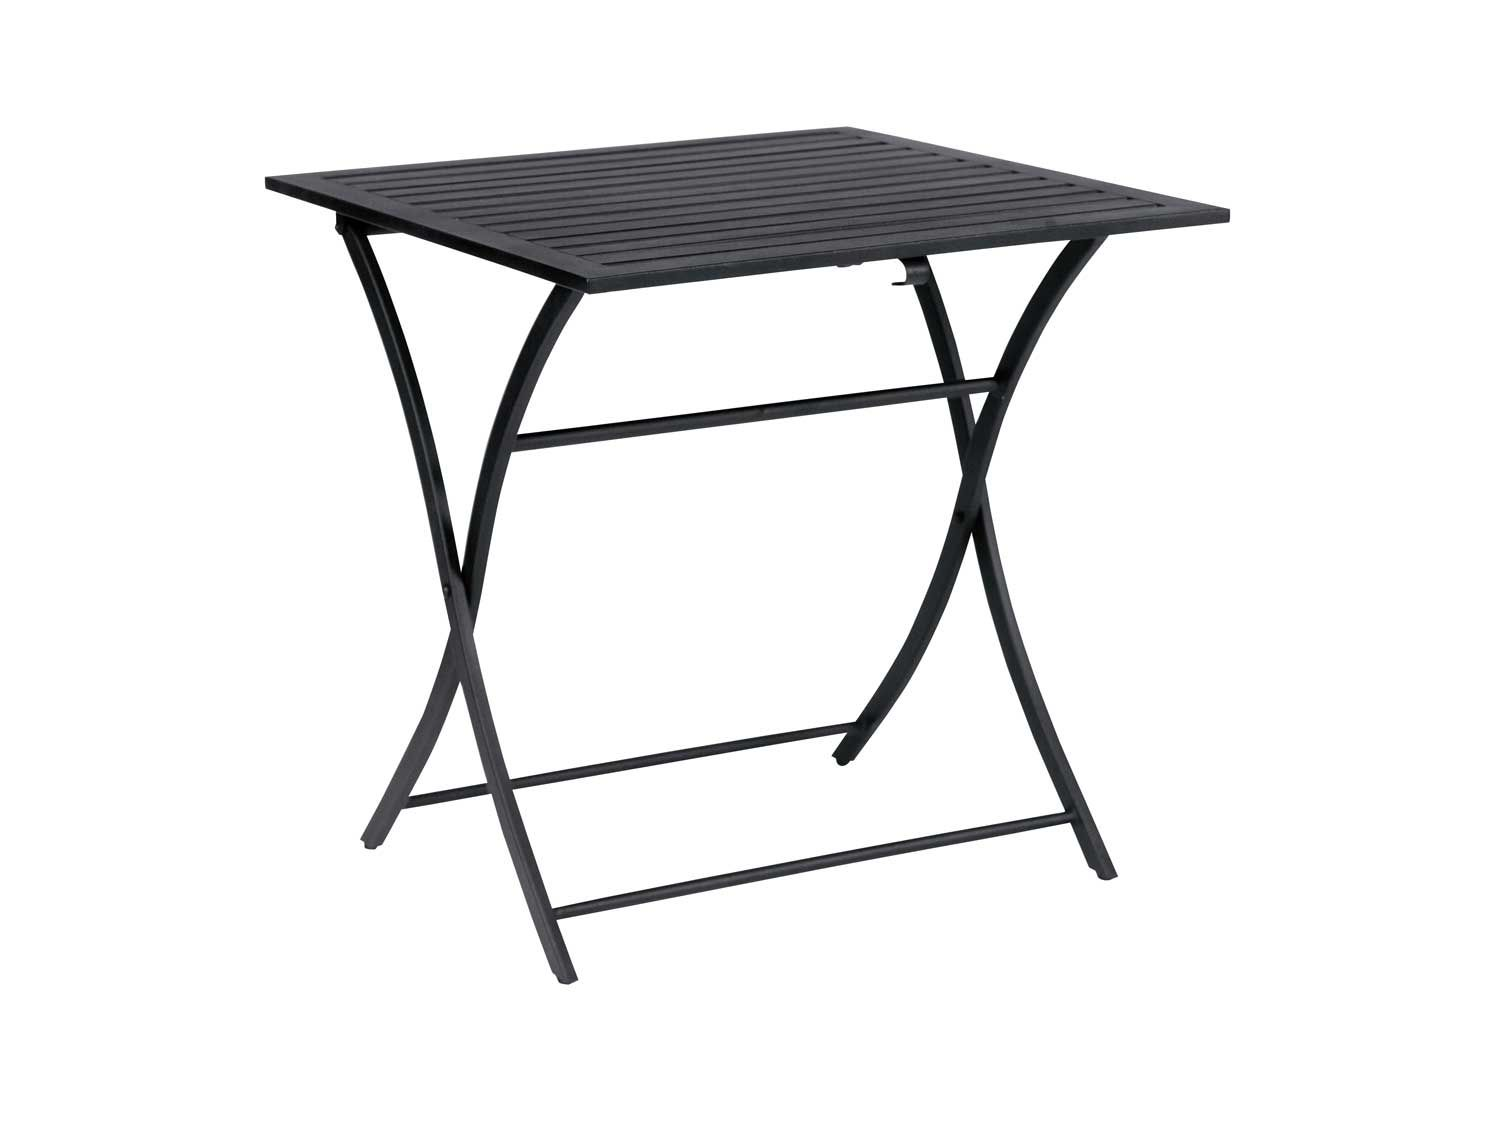 Cosco 48 In Black Plastic Portable Folding High Top Table 14402blk1e The Home Depot High Top Tables Tailgate Table Pub Table Sets